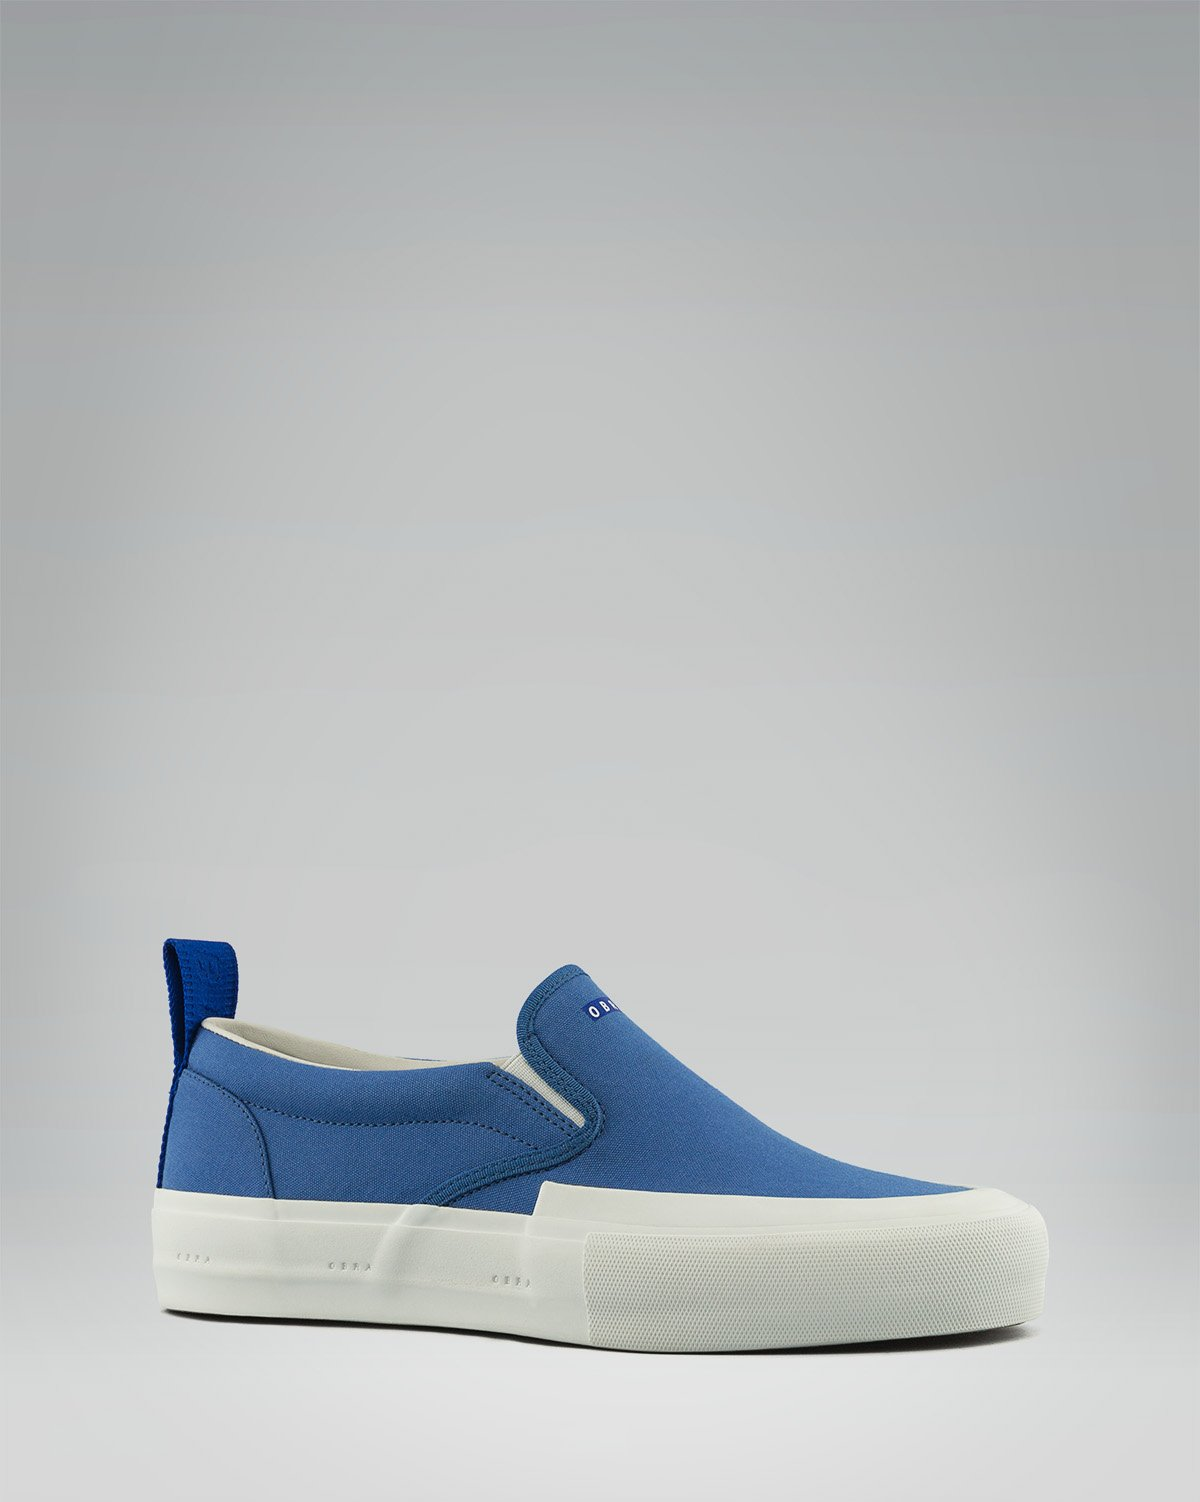 240 CANVAS SLIP-ON WRAP TOE<br />Torres Blue/White/OBRA Blue